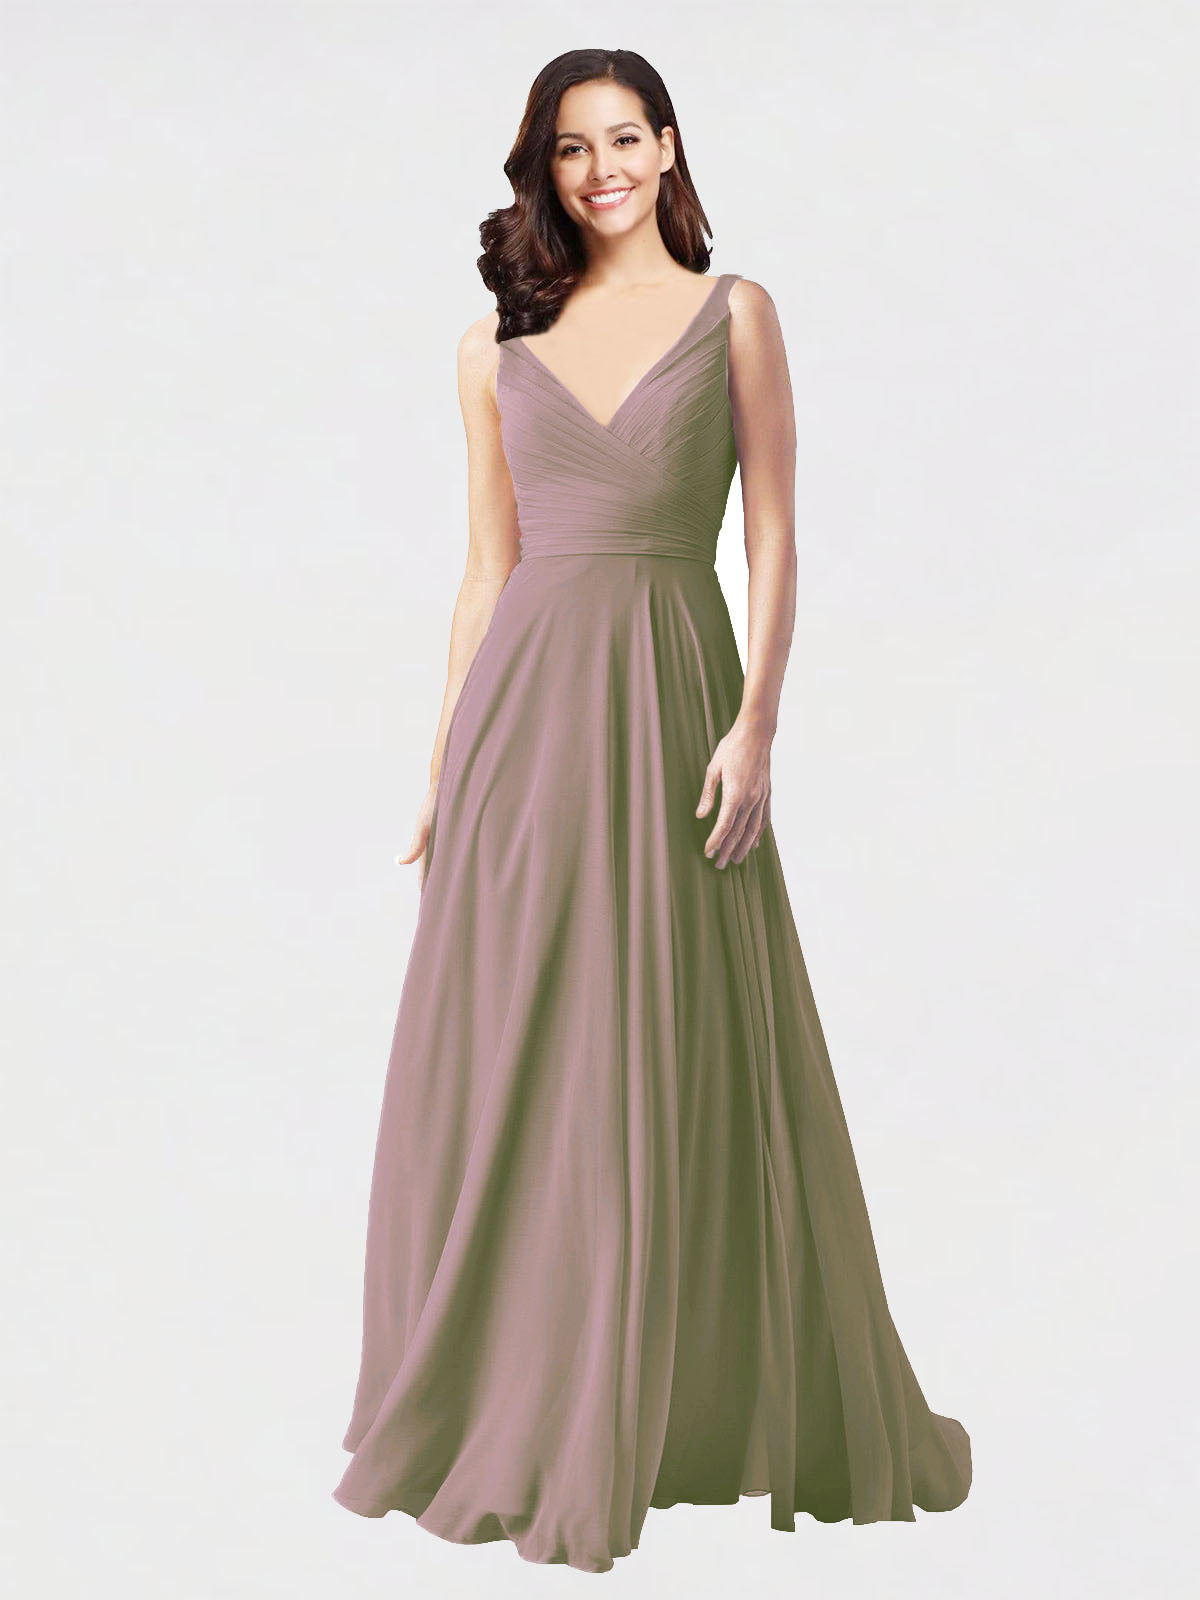 Long A-Line V-Neck Sleeveless Dusty Rose Chiffon Bridesmaid Dress Bernice